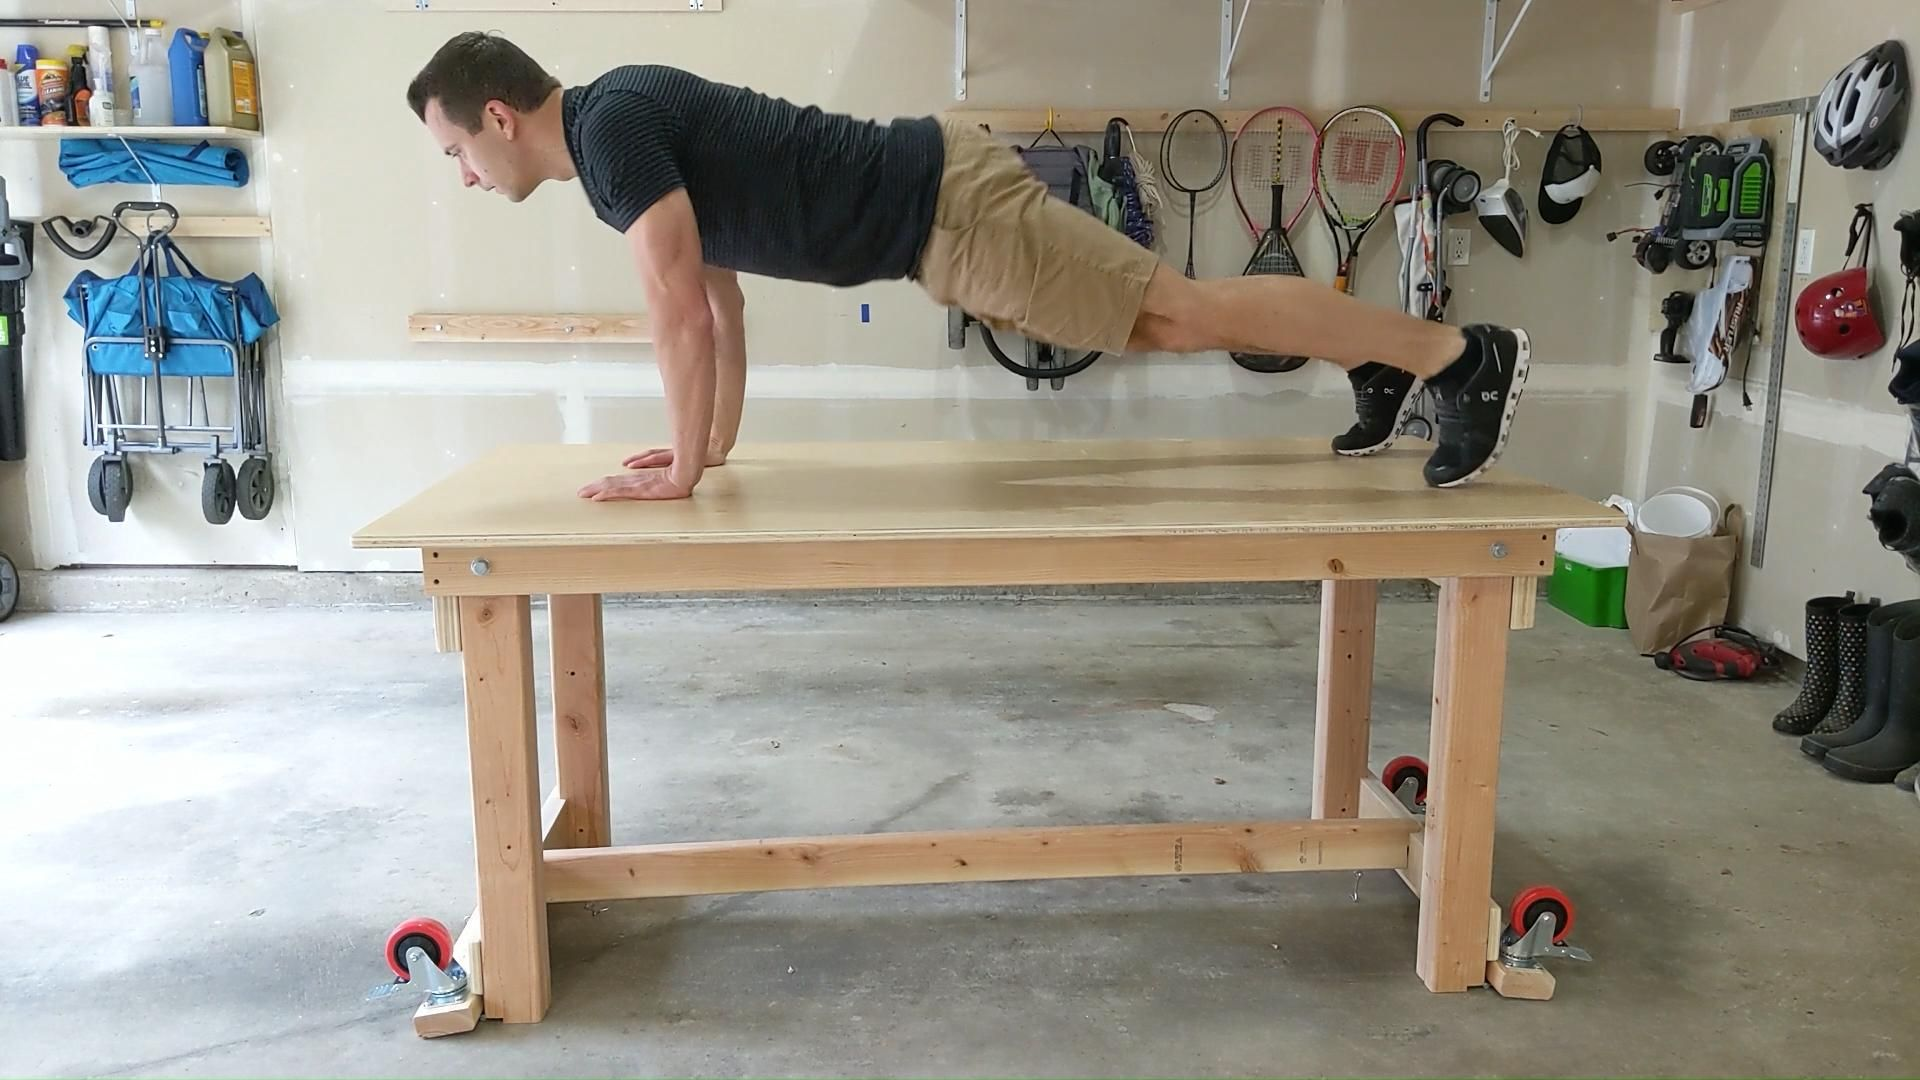 My DIY foldable wall mounted workshop table - Wheels fold / unfold and stability demonstration